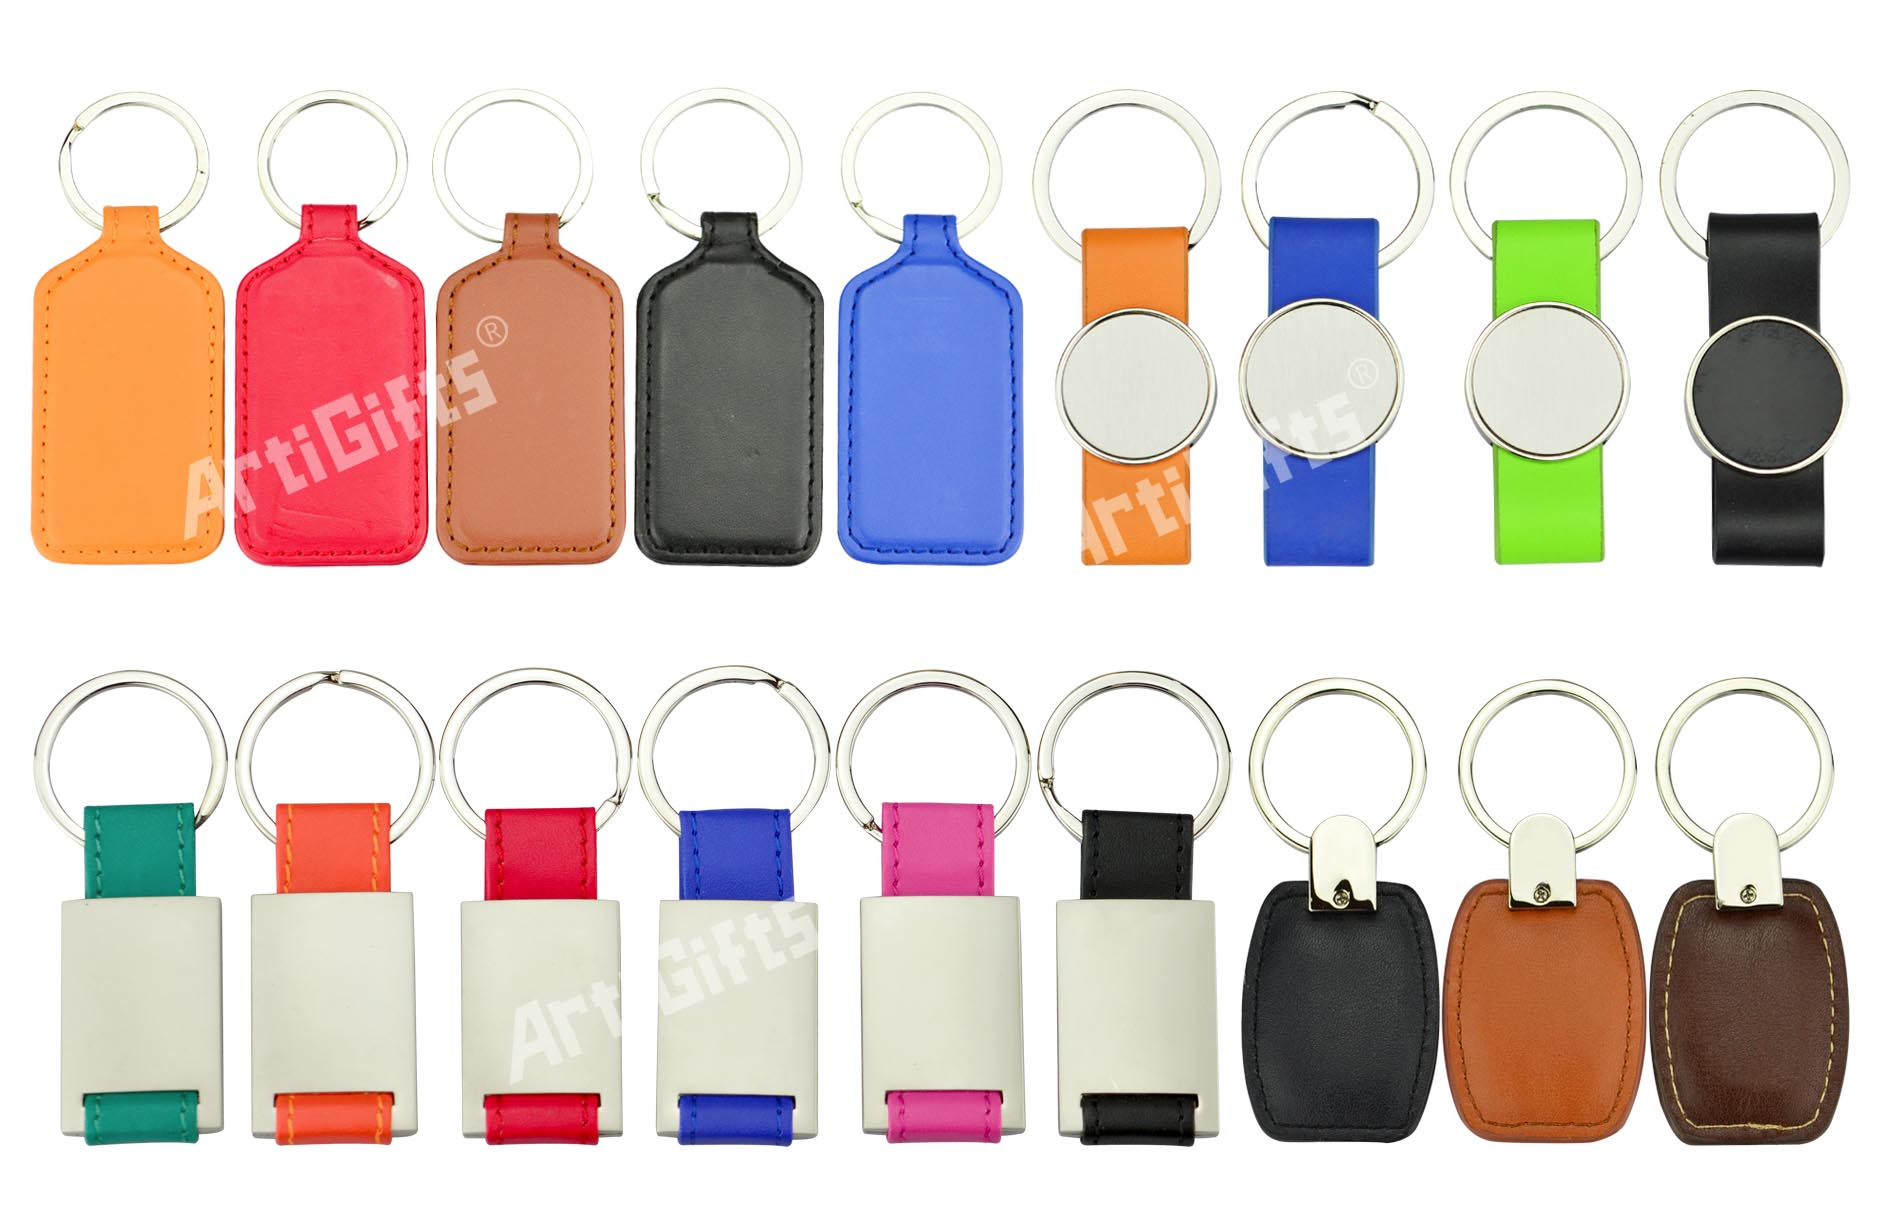 Wholesale high quality stainless steel metal beer bottle opener keychain